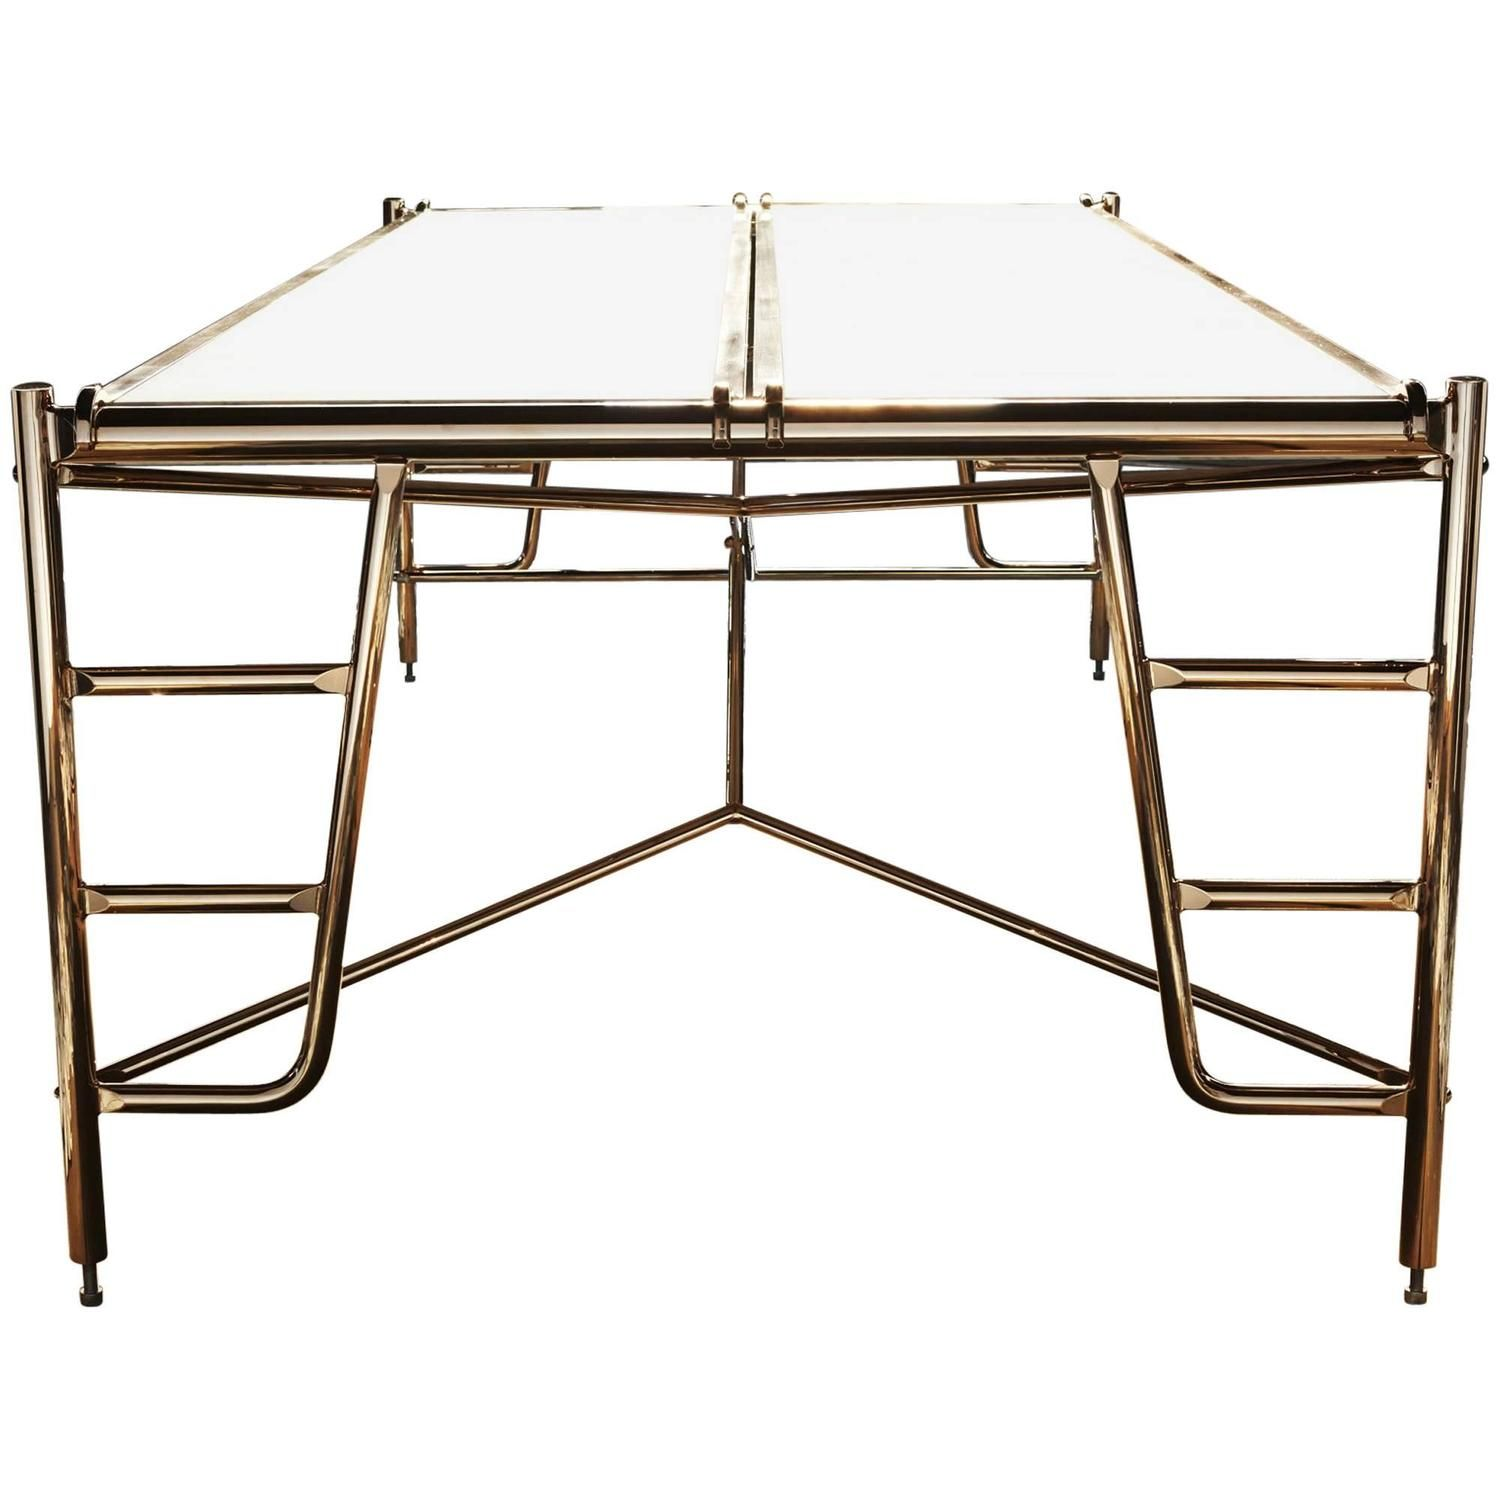 Scaffold Conference Table In Marble And Bronze With Seating For - Marble conference table for sale